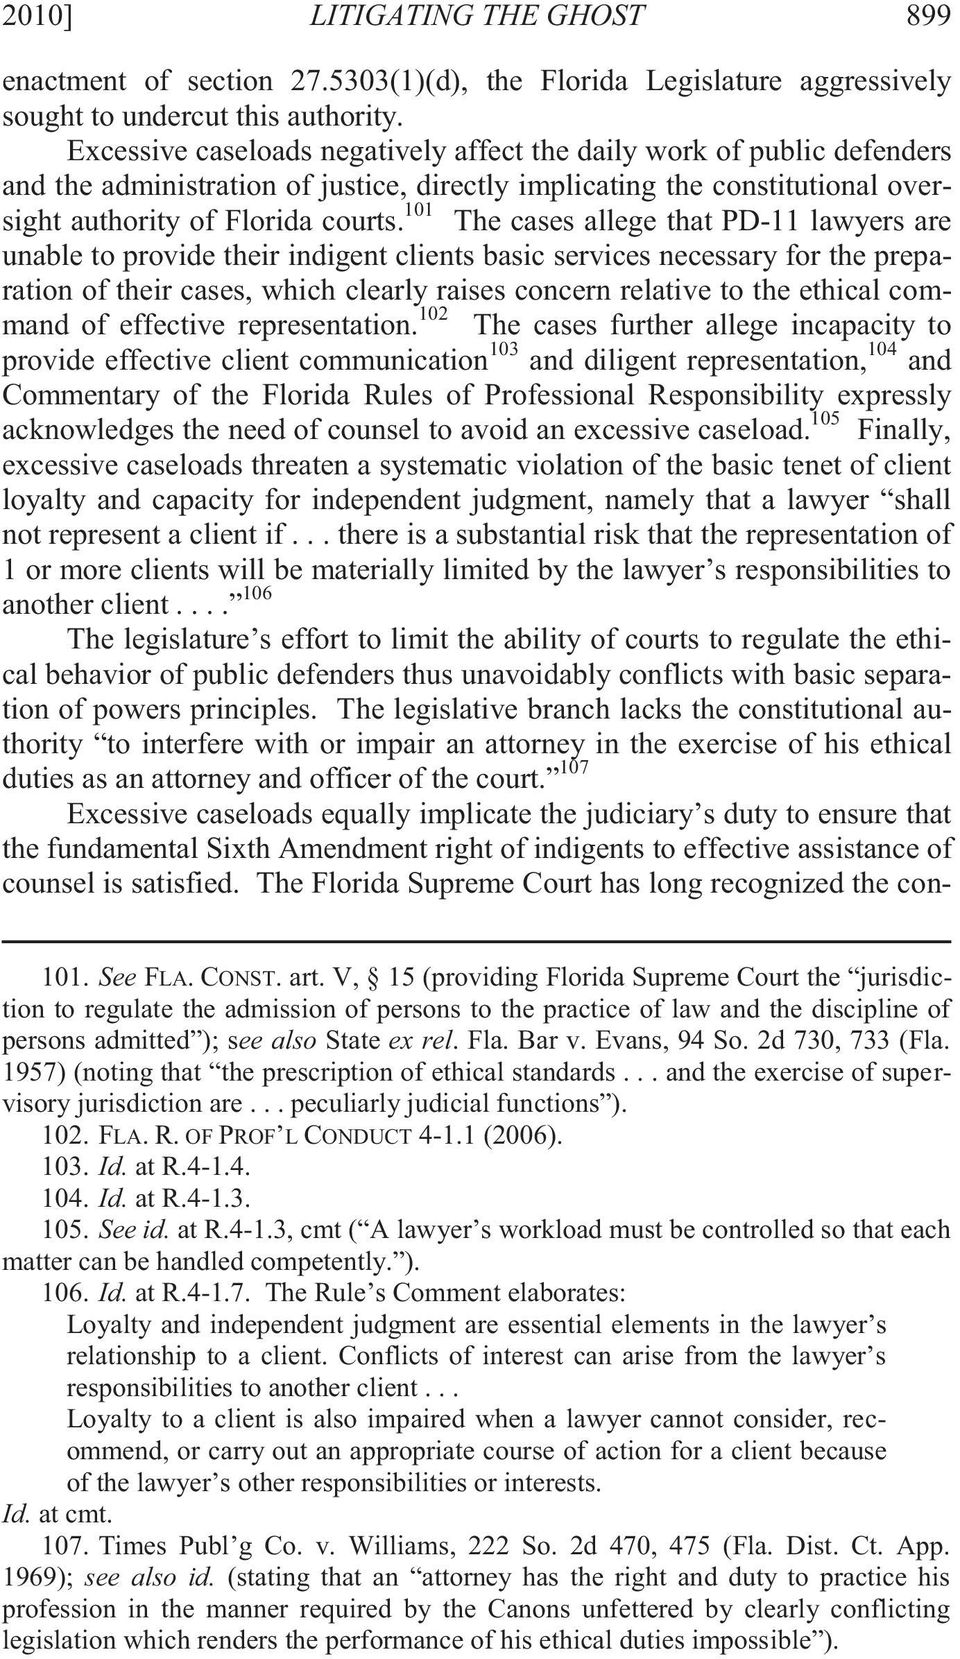 101 The cases allege that PD-11 lawyers are unable to provide their indigent clients basic services necessary for the preparation of their cases, which clearly raises concern relative to the ethical